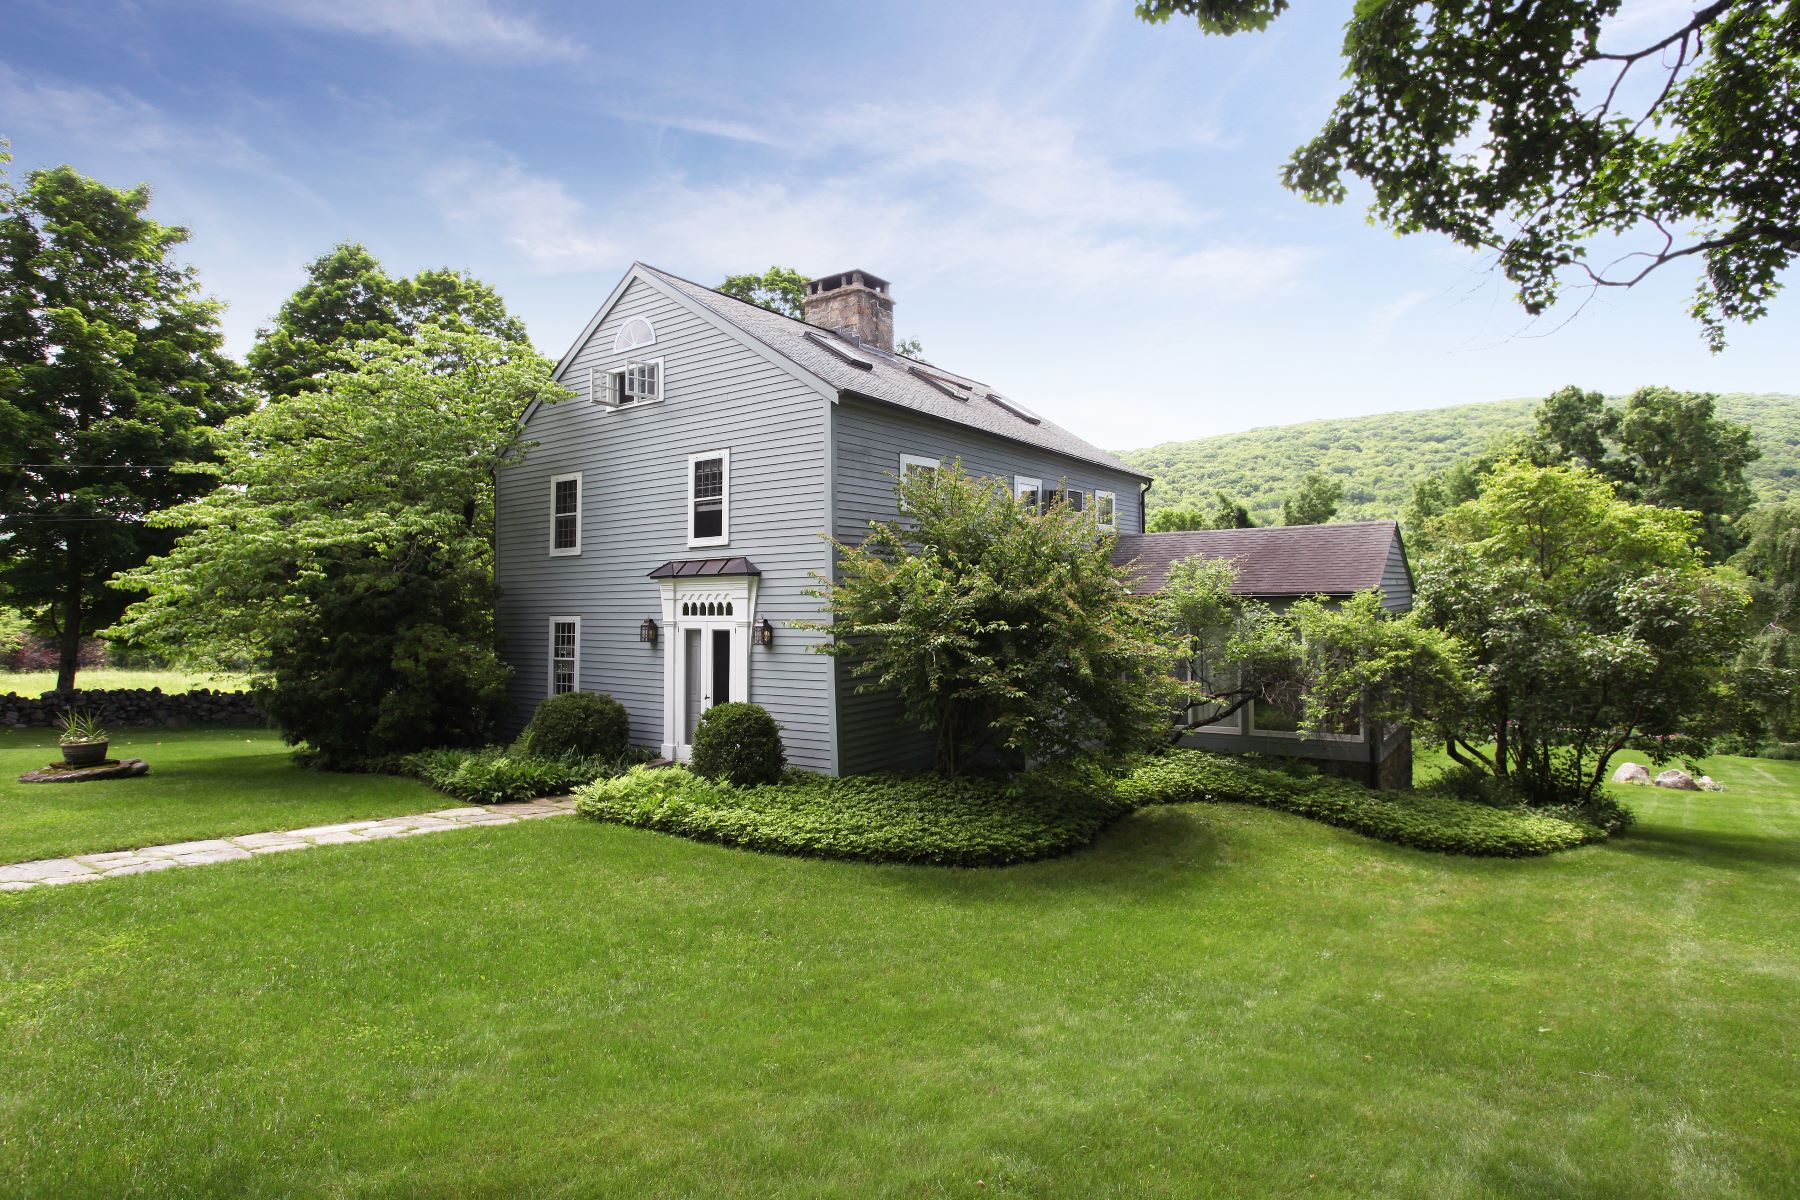 Casa Unifamiliar por un Venta en The Samuel Hill House 64 Cherniske New Milford, Connecticut 06776 Estados Unidos